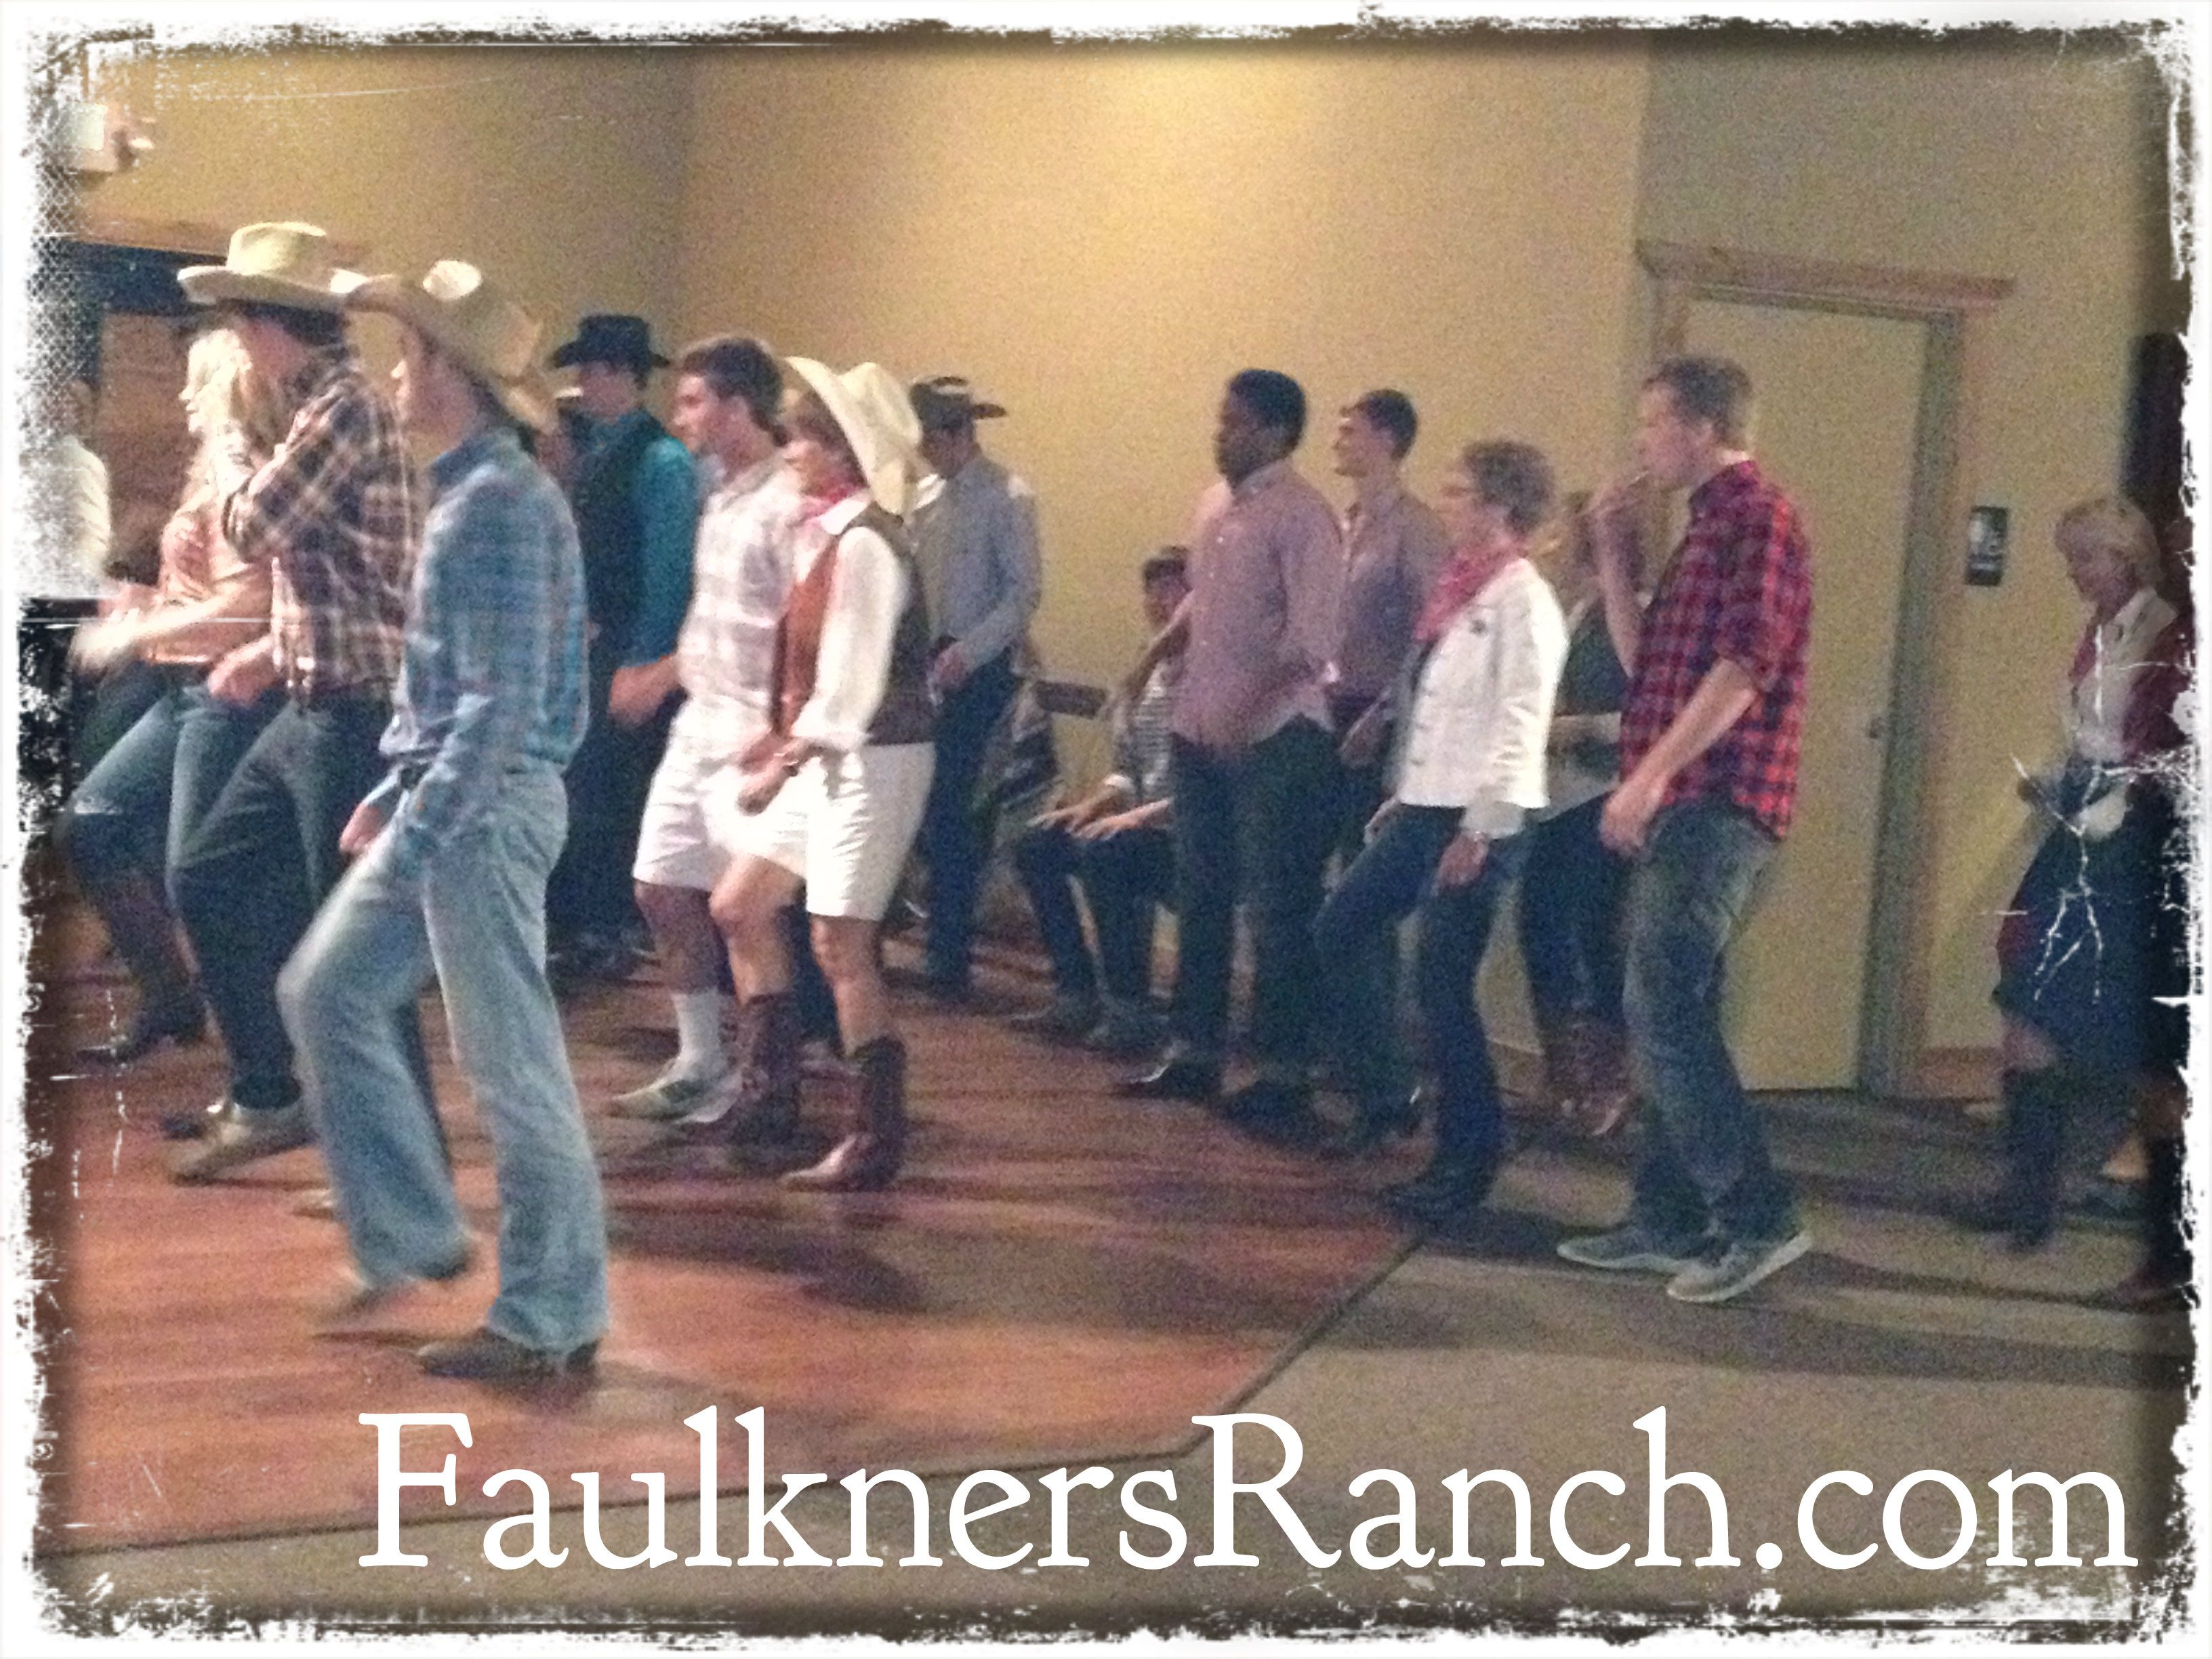 Learning the footloose dance line dancing lessons are a